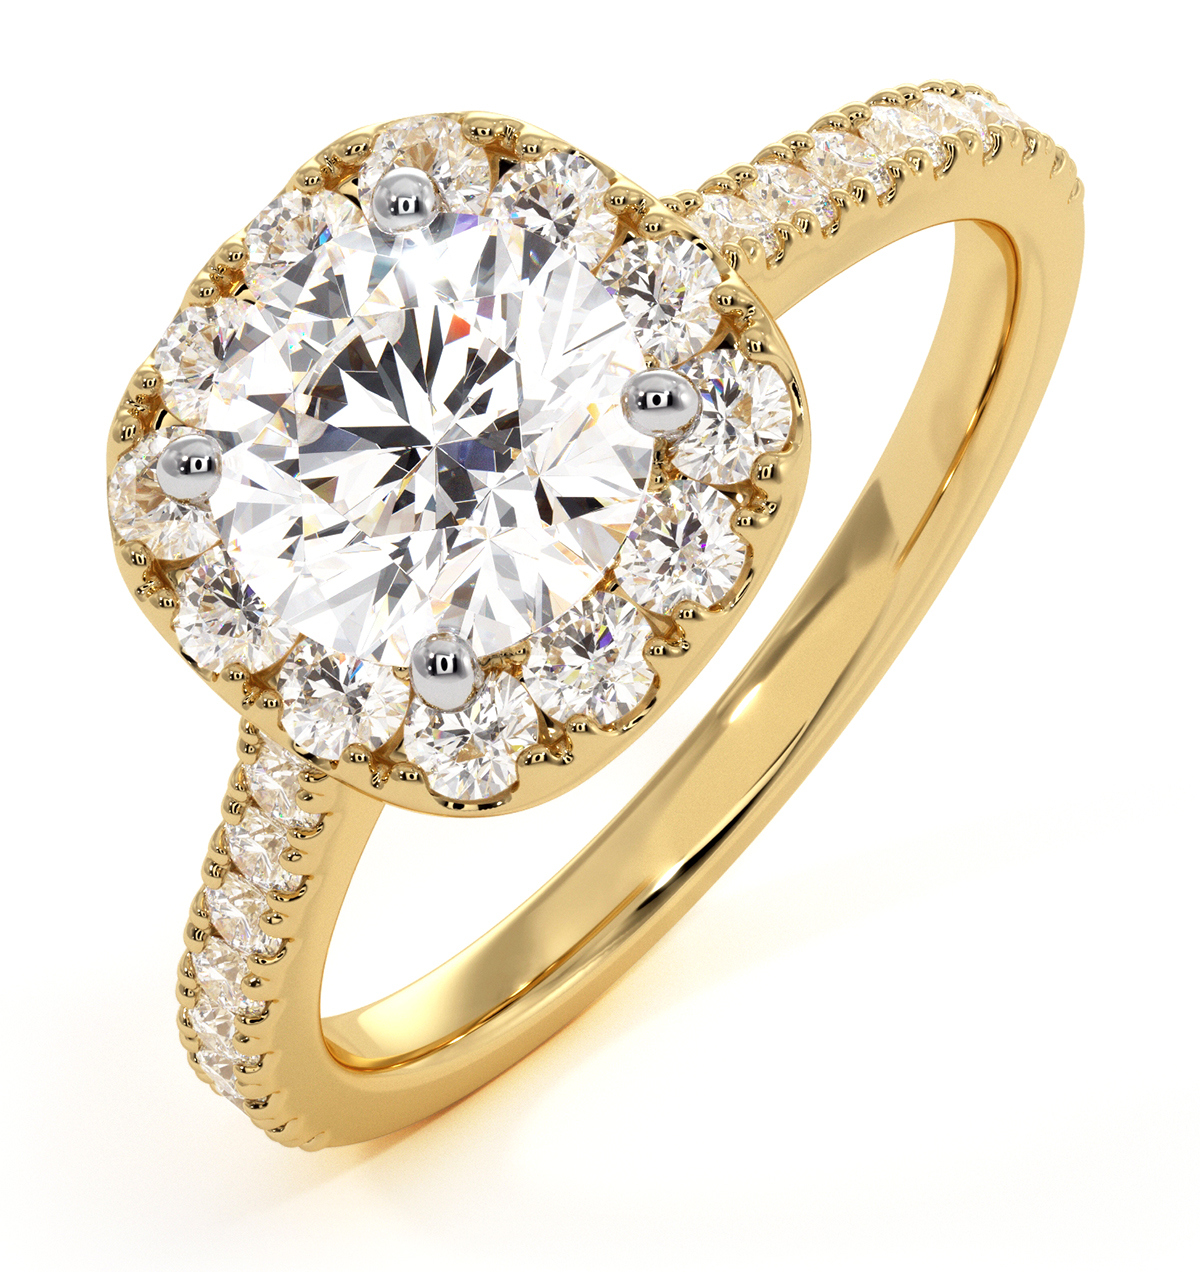 Elizabeth GIA Diamond Halo Engagement Ring in 18K Gold 1.70ct G/VS1 - image 1